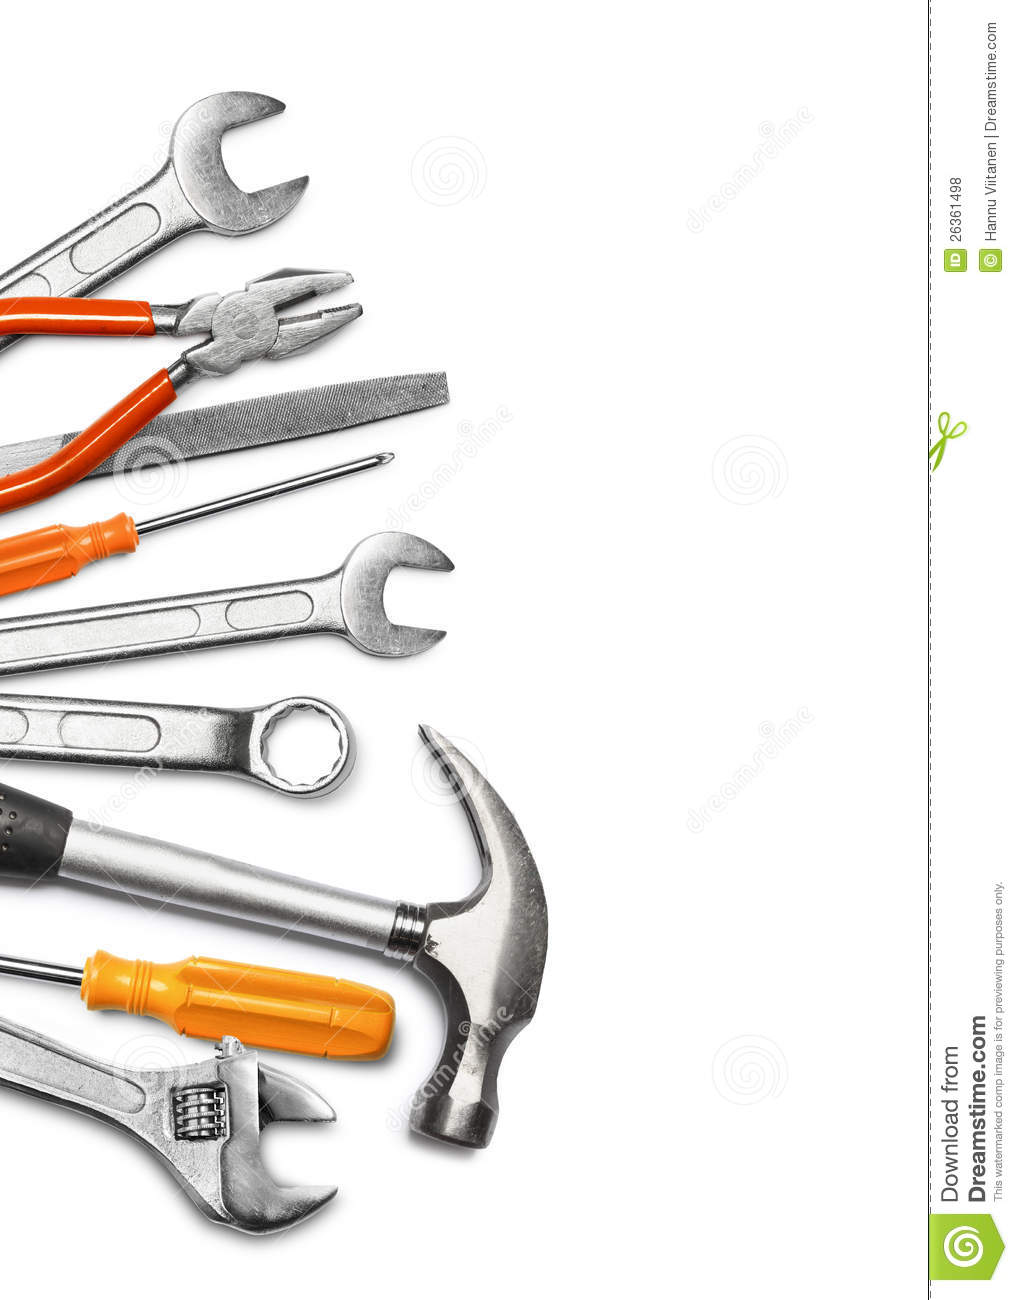 Mechanic Tools On White Royalty Free Stock Photos   Image  26361498